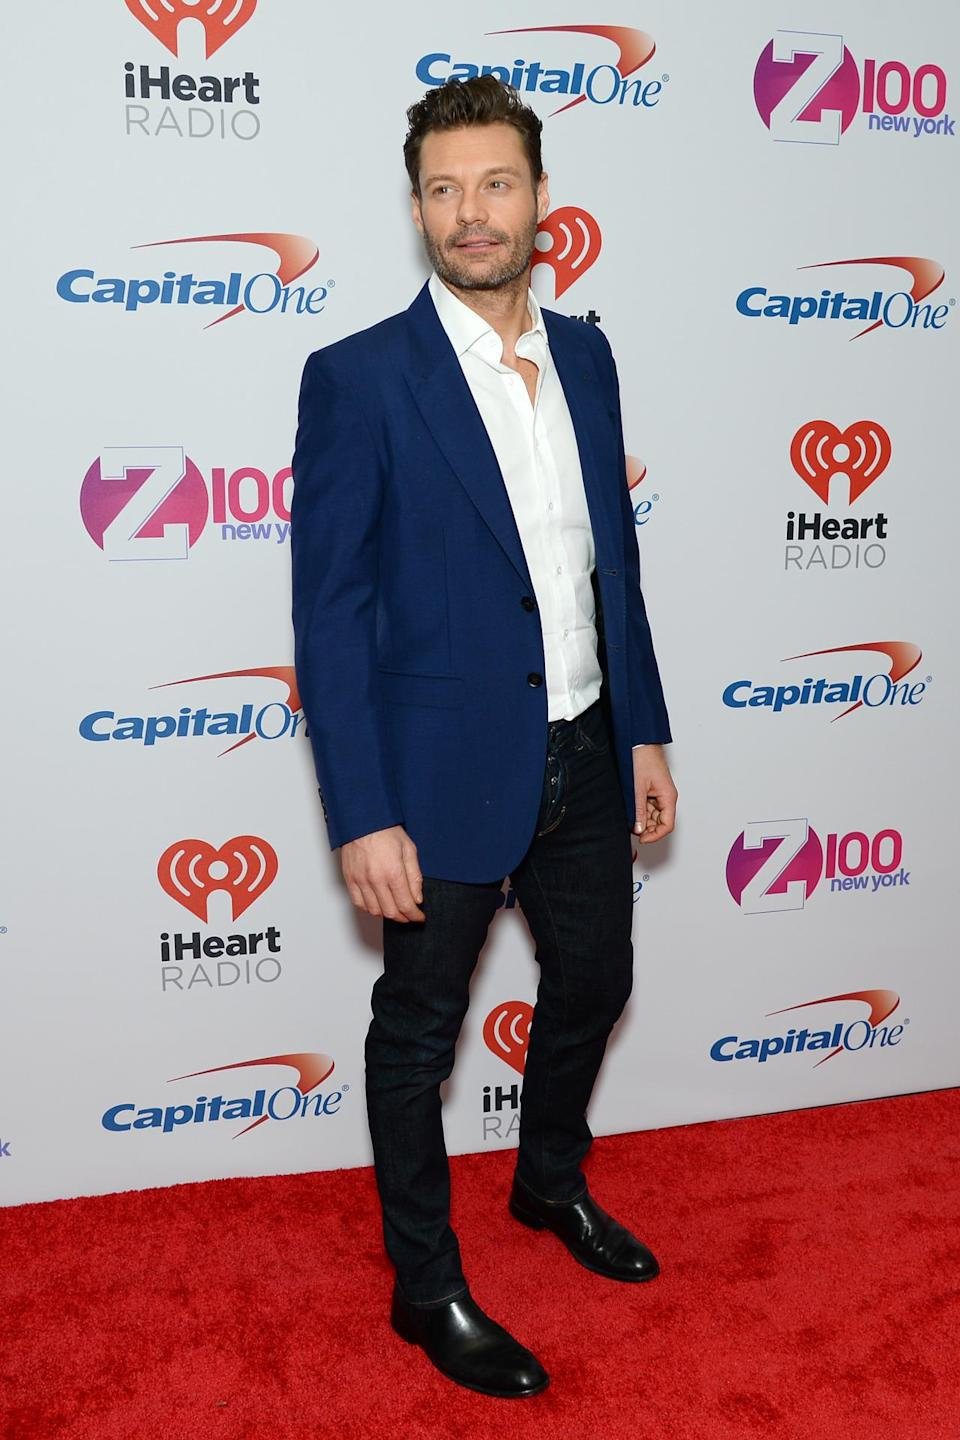 <p>Ryan Seacrest looked <i>so excited</i> excited to be at the show last night, serving us casual Friday realness in a pair of dark wash jeans, a white button down, navy blue jacket and black boots. </p>